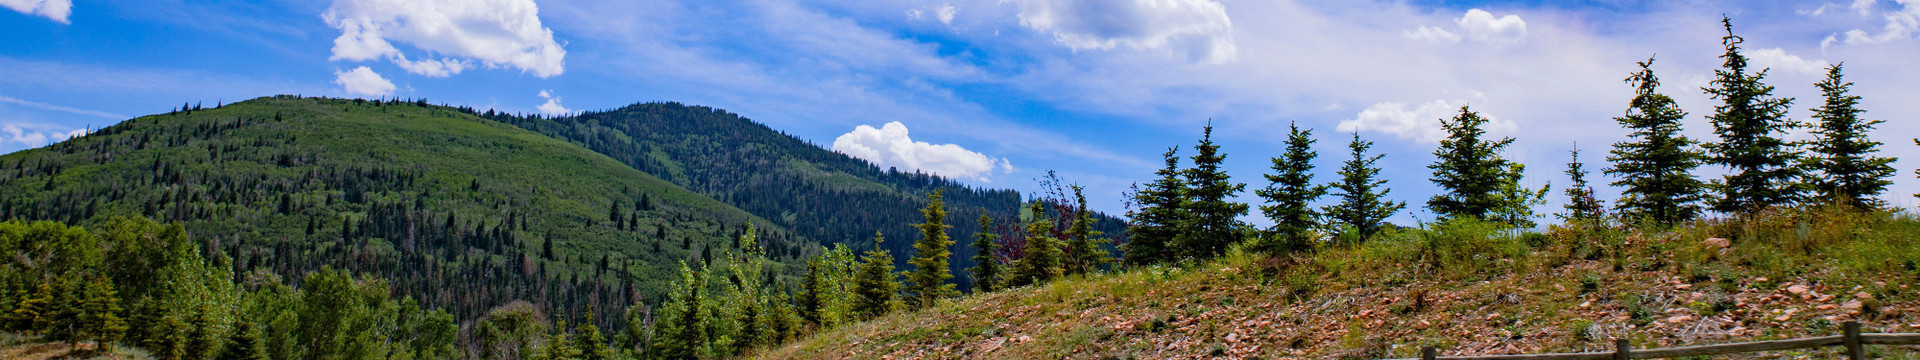 Activities at our Park City, Utah Hotel and Ski Resort located near Park City Mountain | Mountain Biking